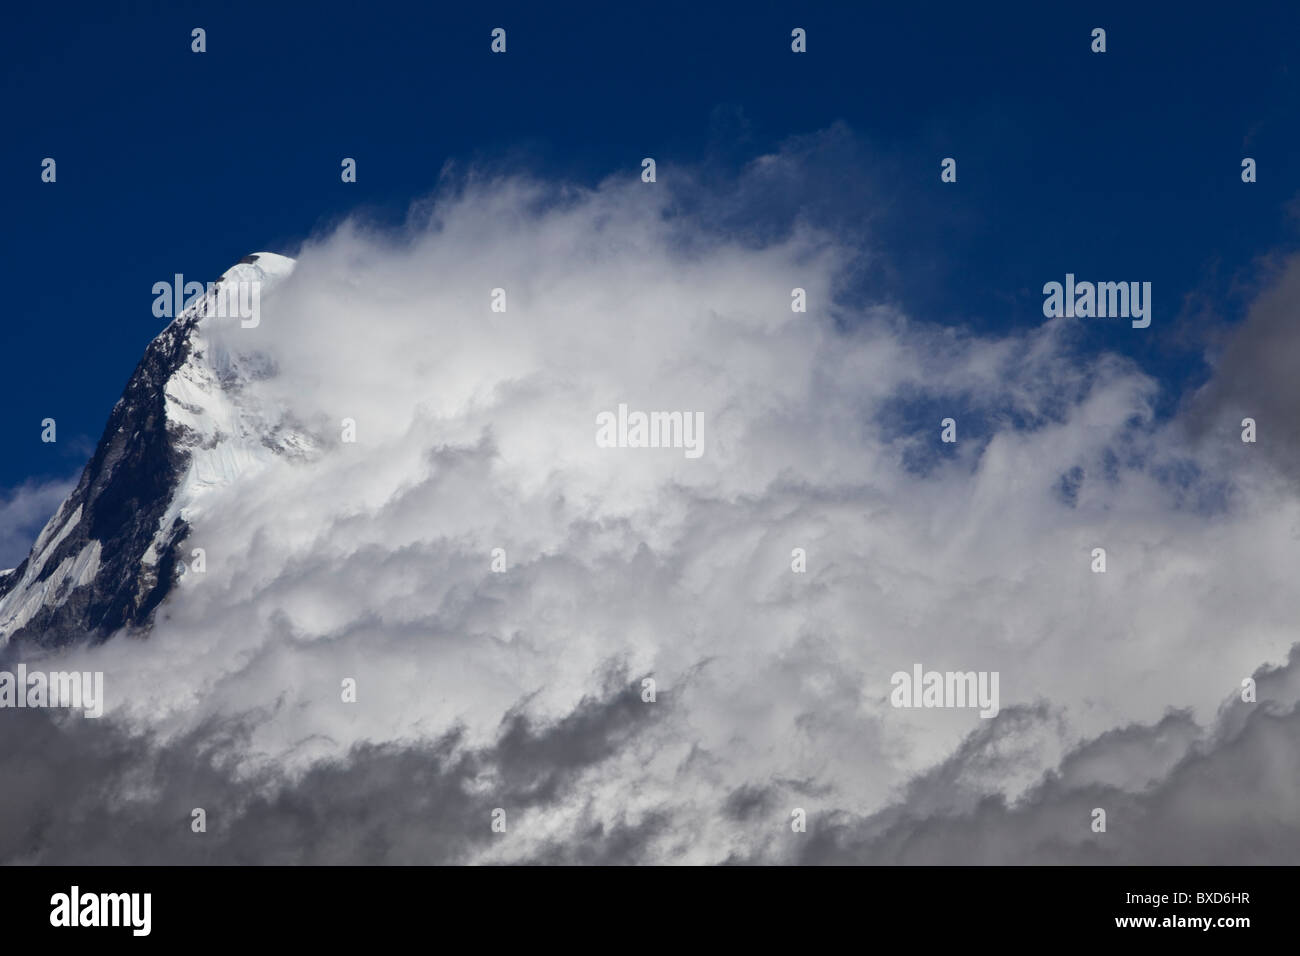 A cloud system builds from the south face of Annapurna South. - Stock Image